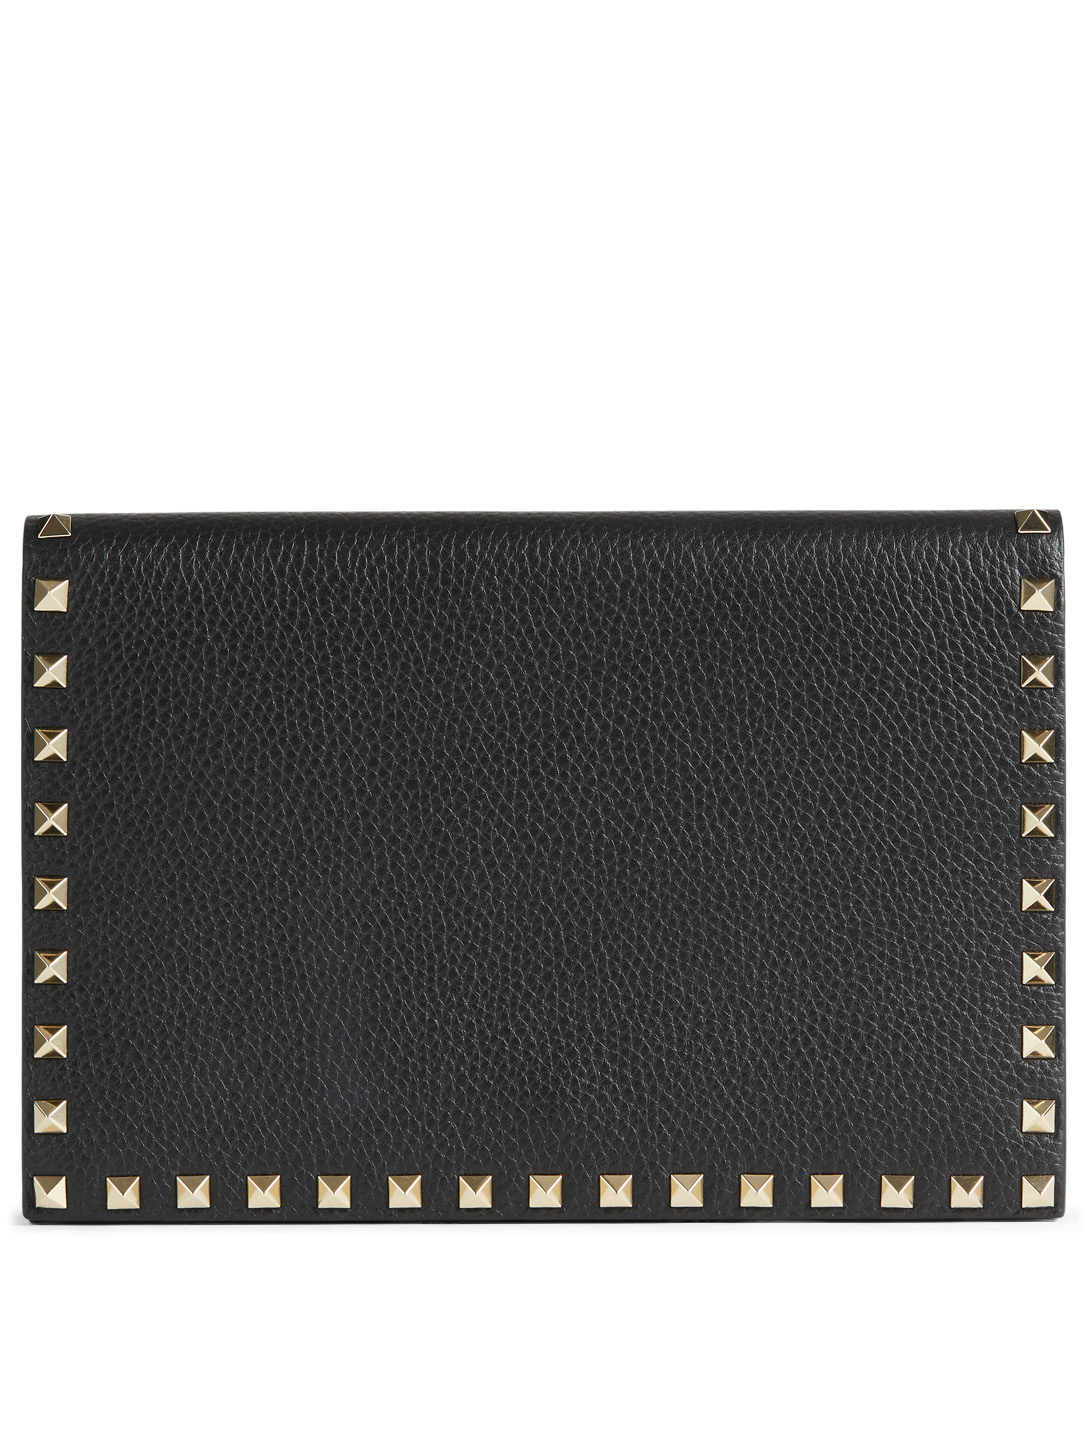 990029dc15 VALENTINO GARAVANI Medium Rockstud Leather Clutch Bag | Holt Renfrew